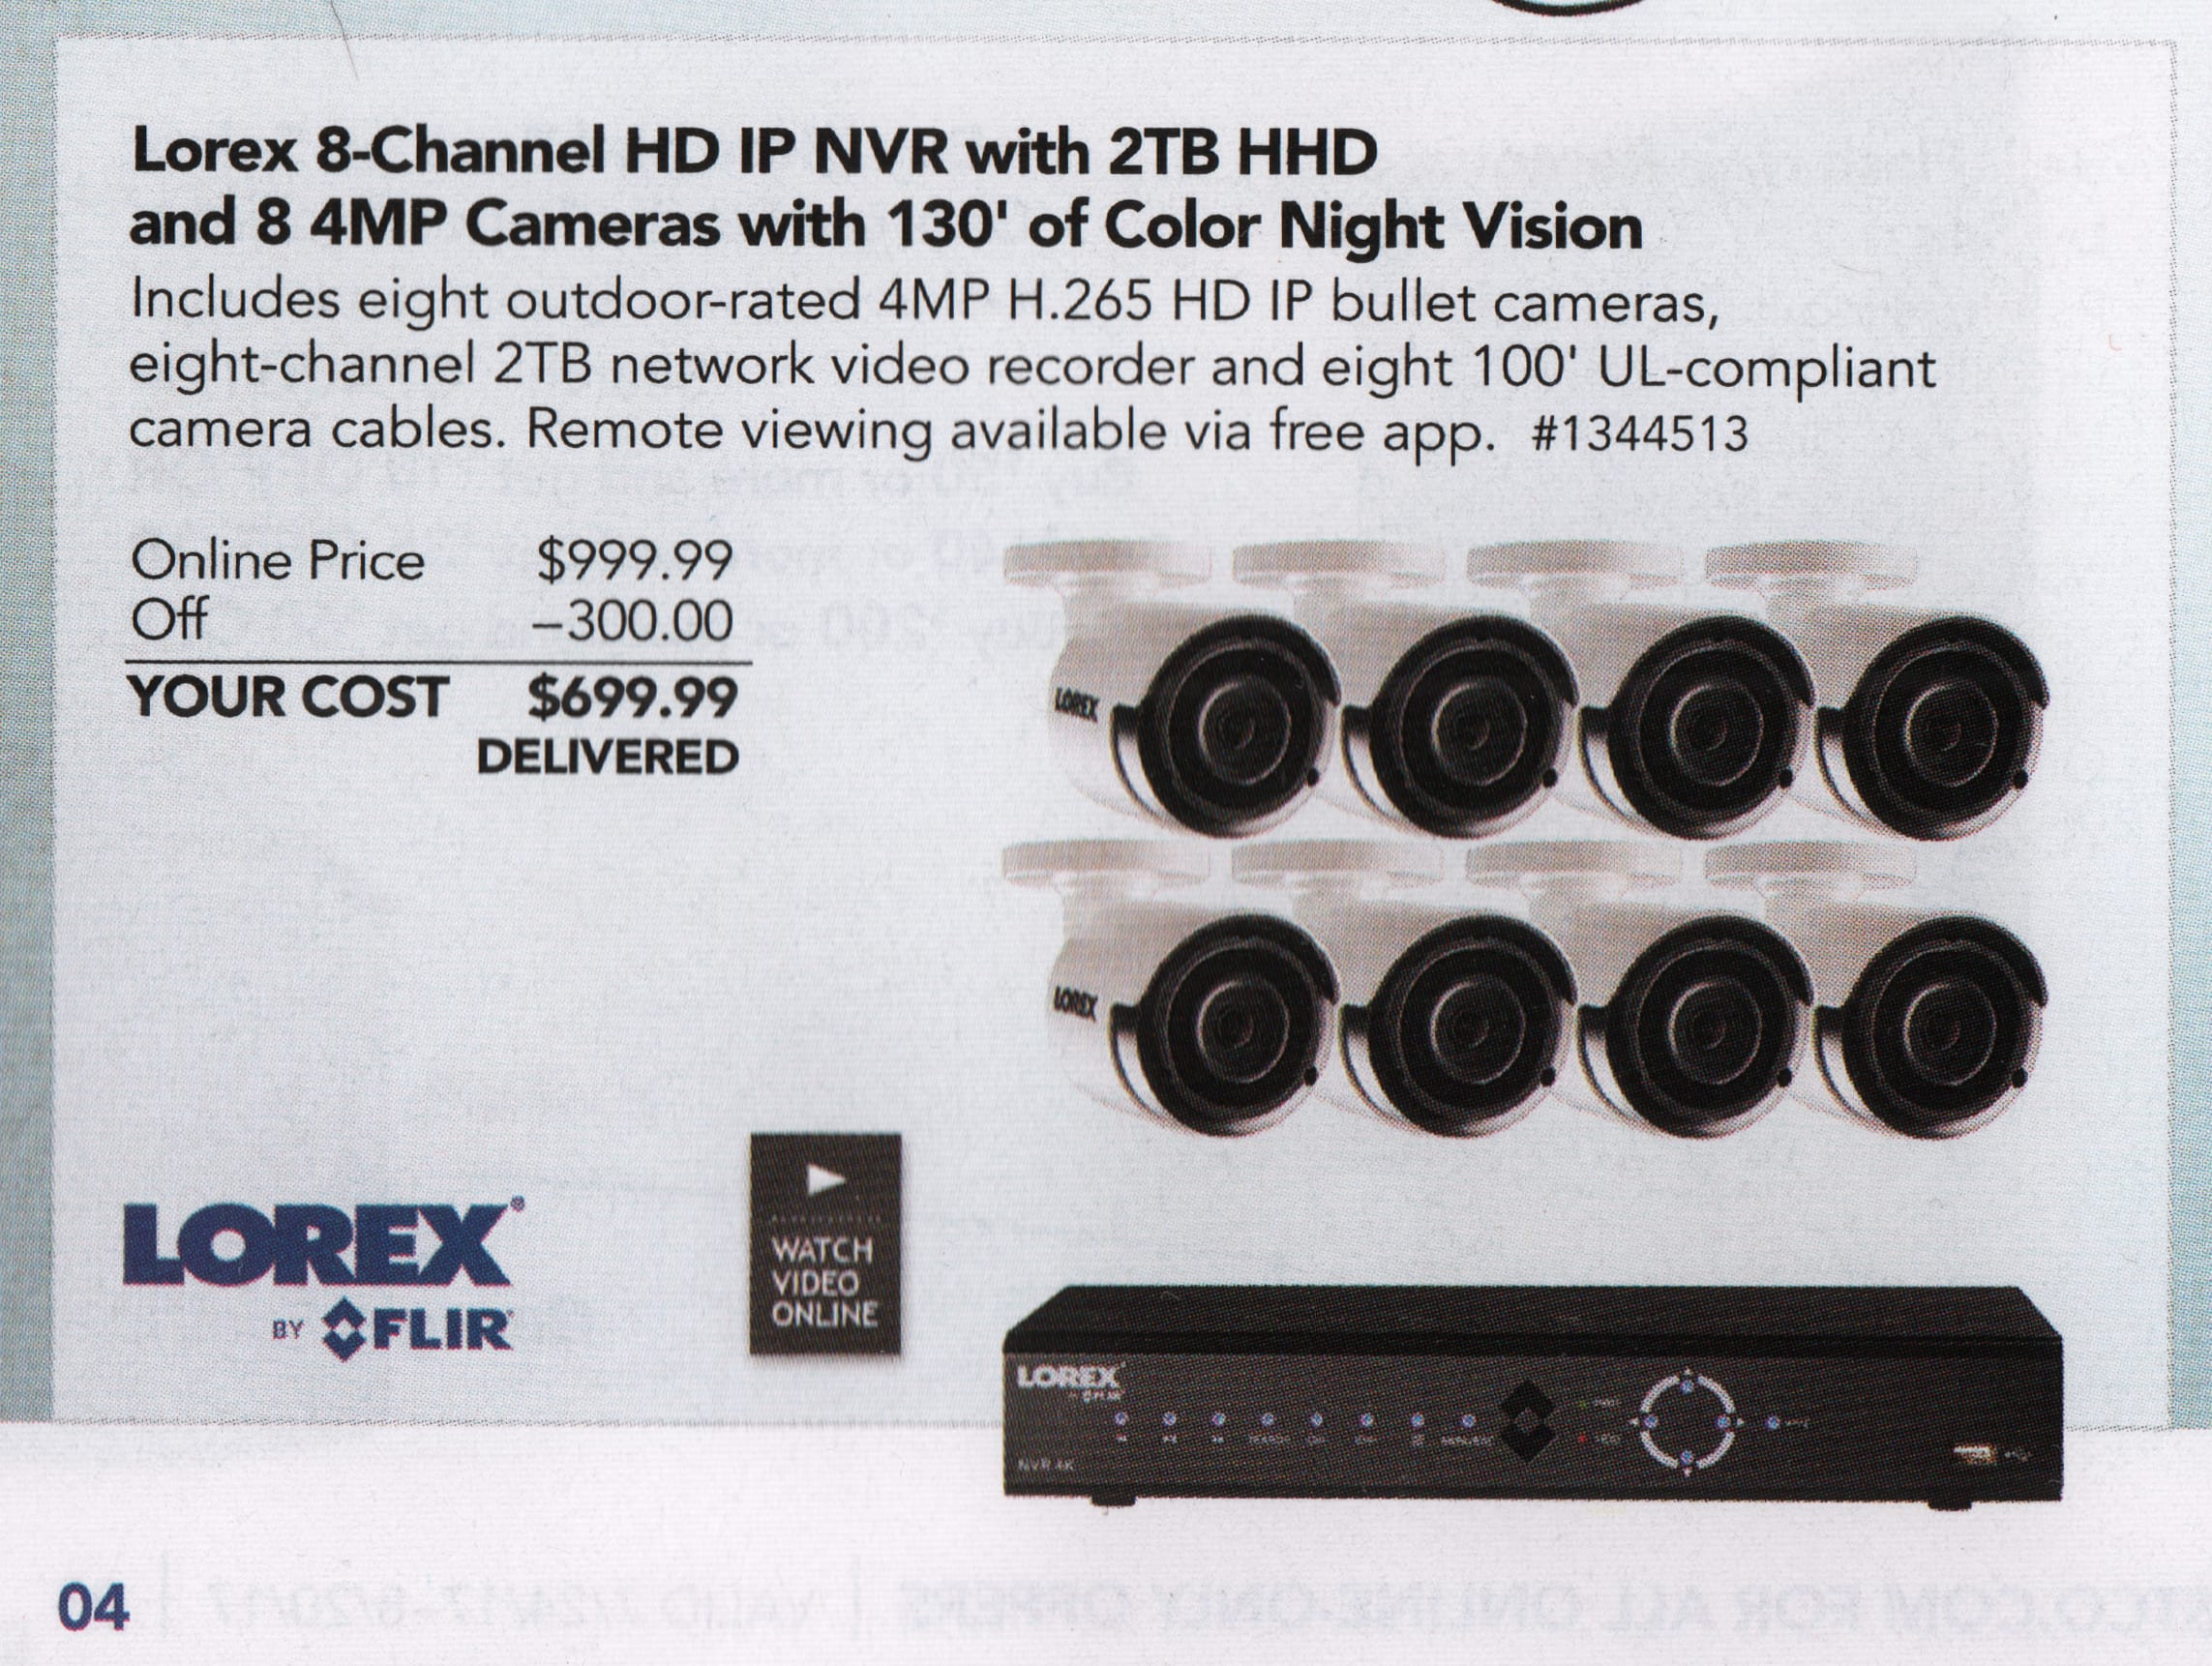 Starts July 24th, Lorex 8 4MP cameras, 2TB DVR and cables for 699.99 (+tax, free shipping)